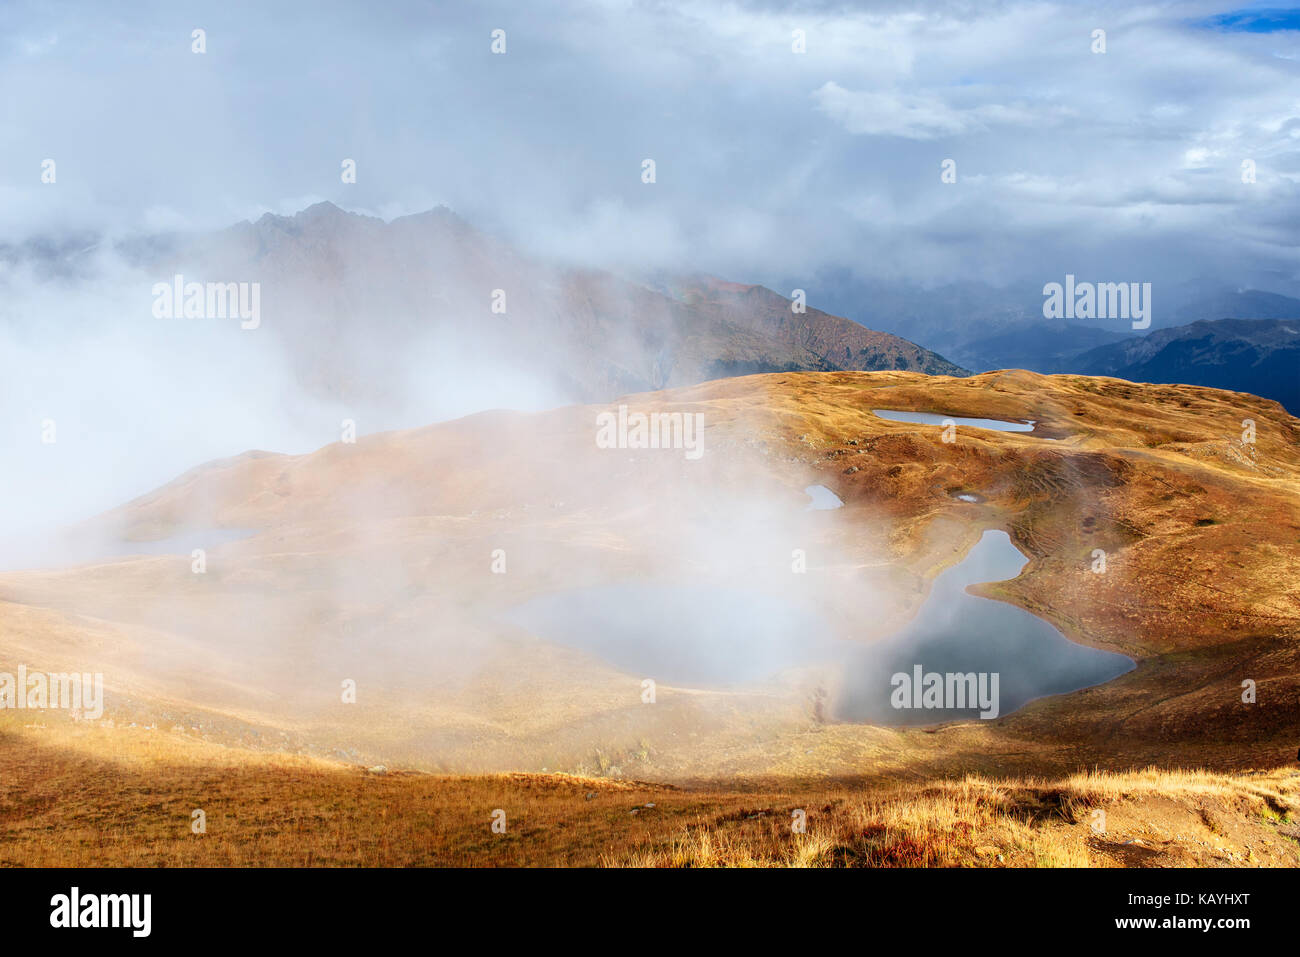 Majestic mountain landscape. Koruldi lakes and a tourist admiring the view. Active life concept - Stock Image